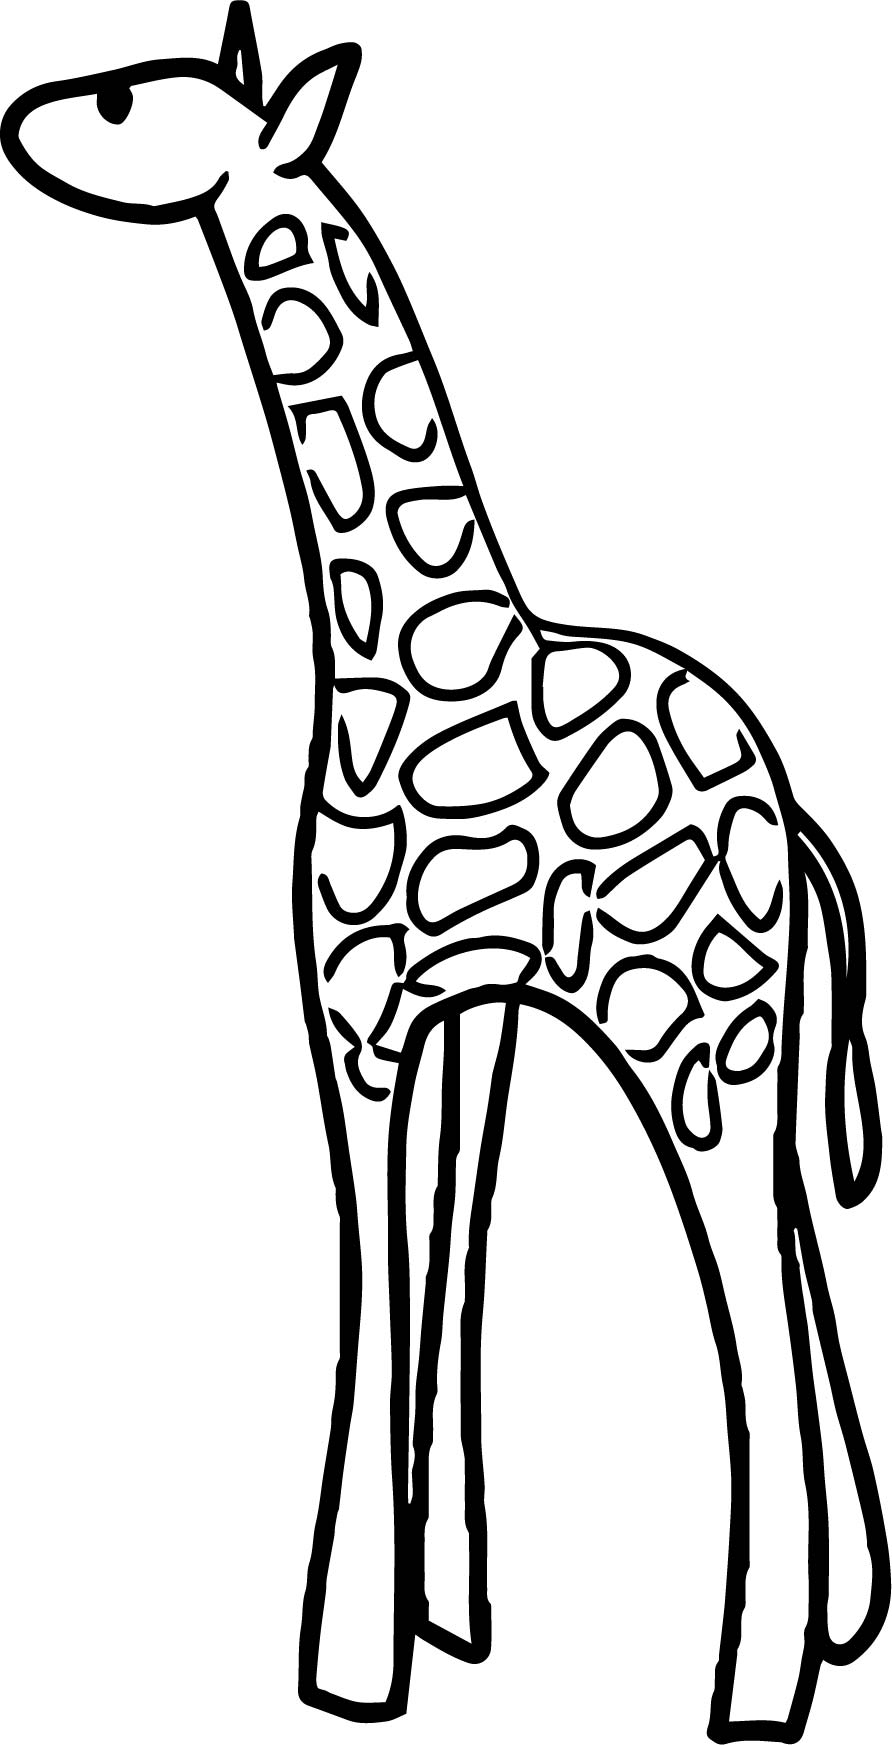 Giraffe Small Coloring Page